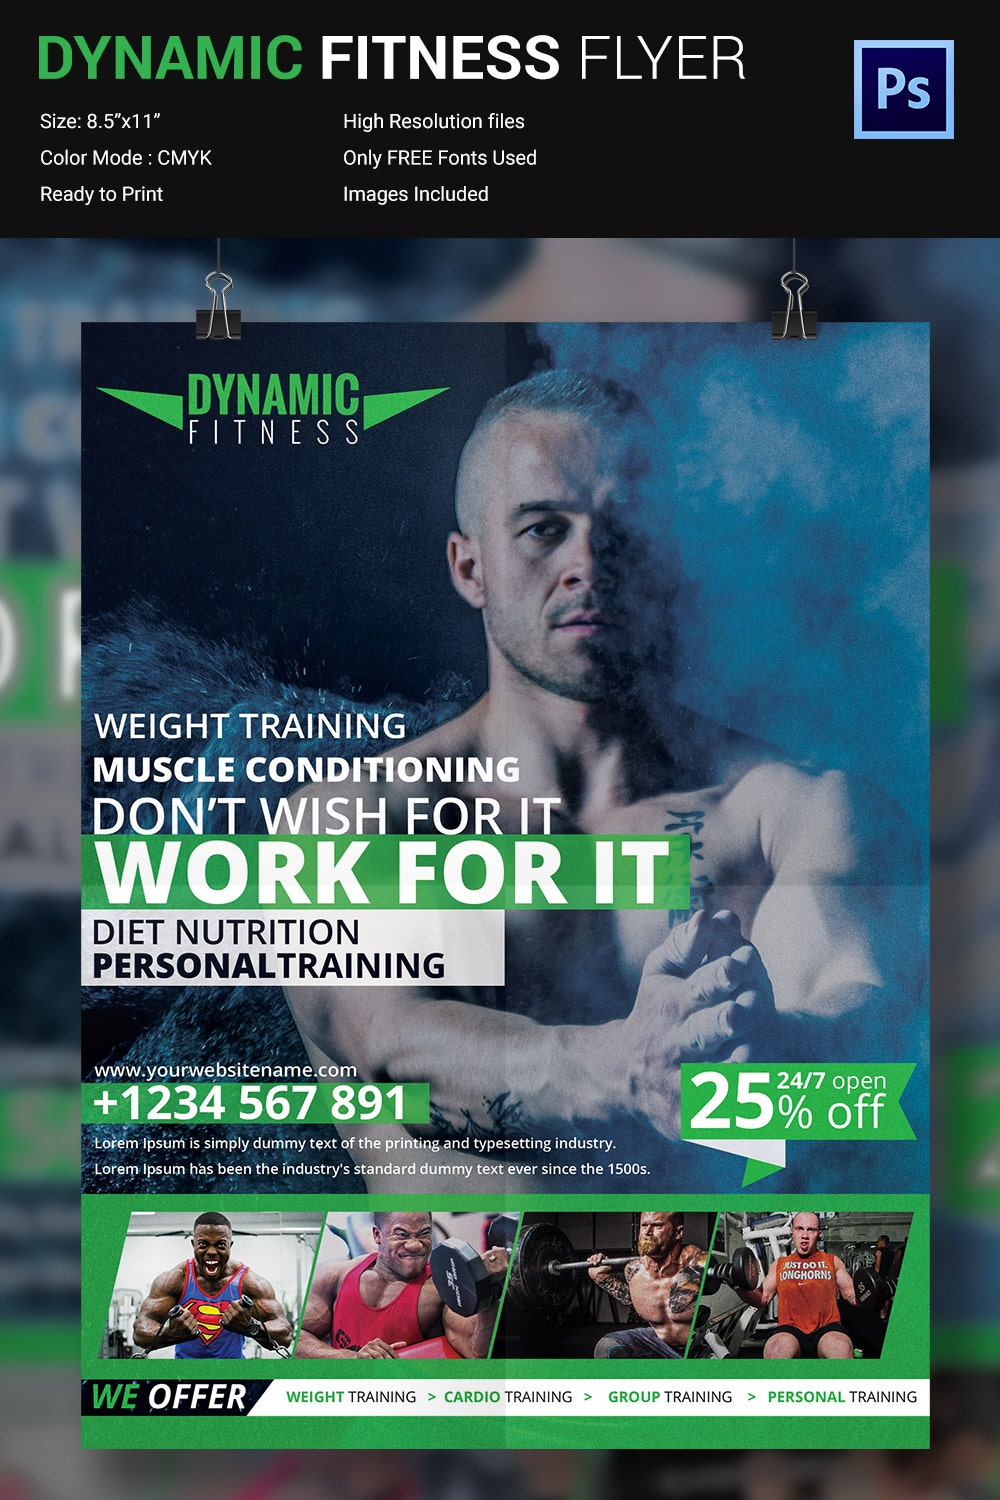 Dynamic Fitness Flyer Design